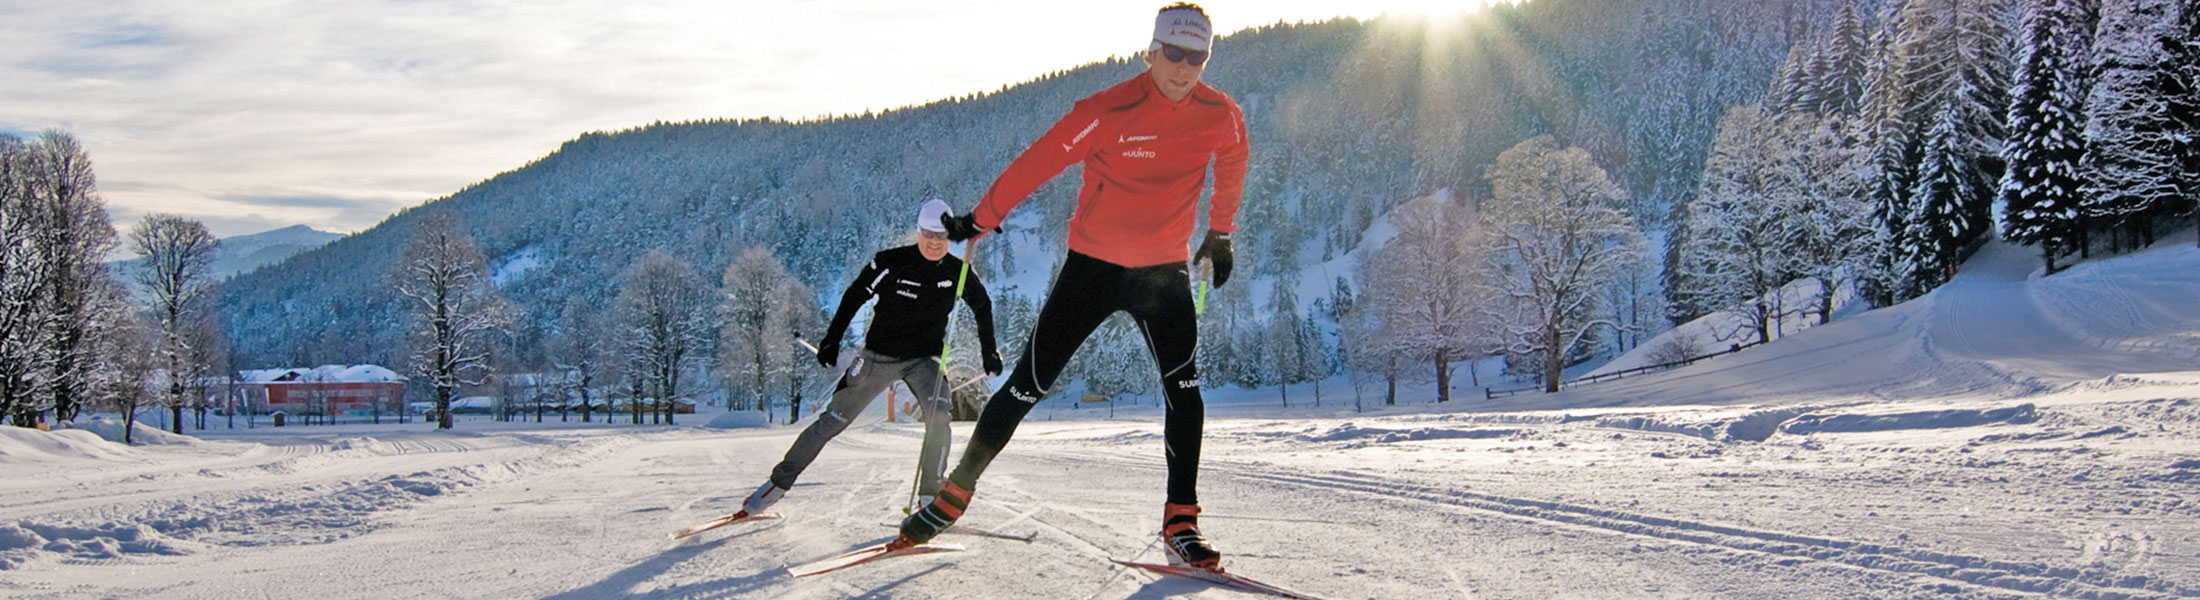 Cross country skiing lessons